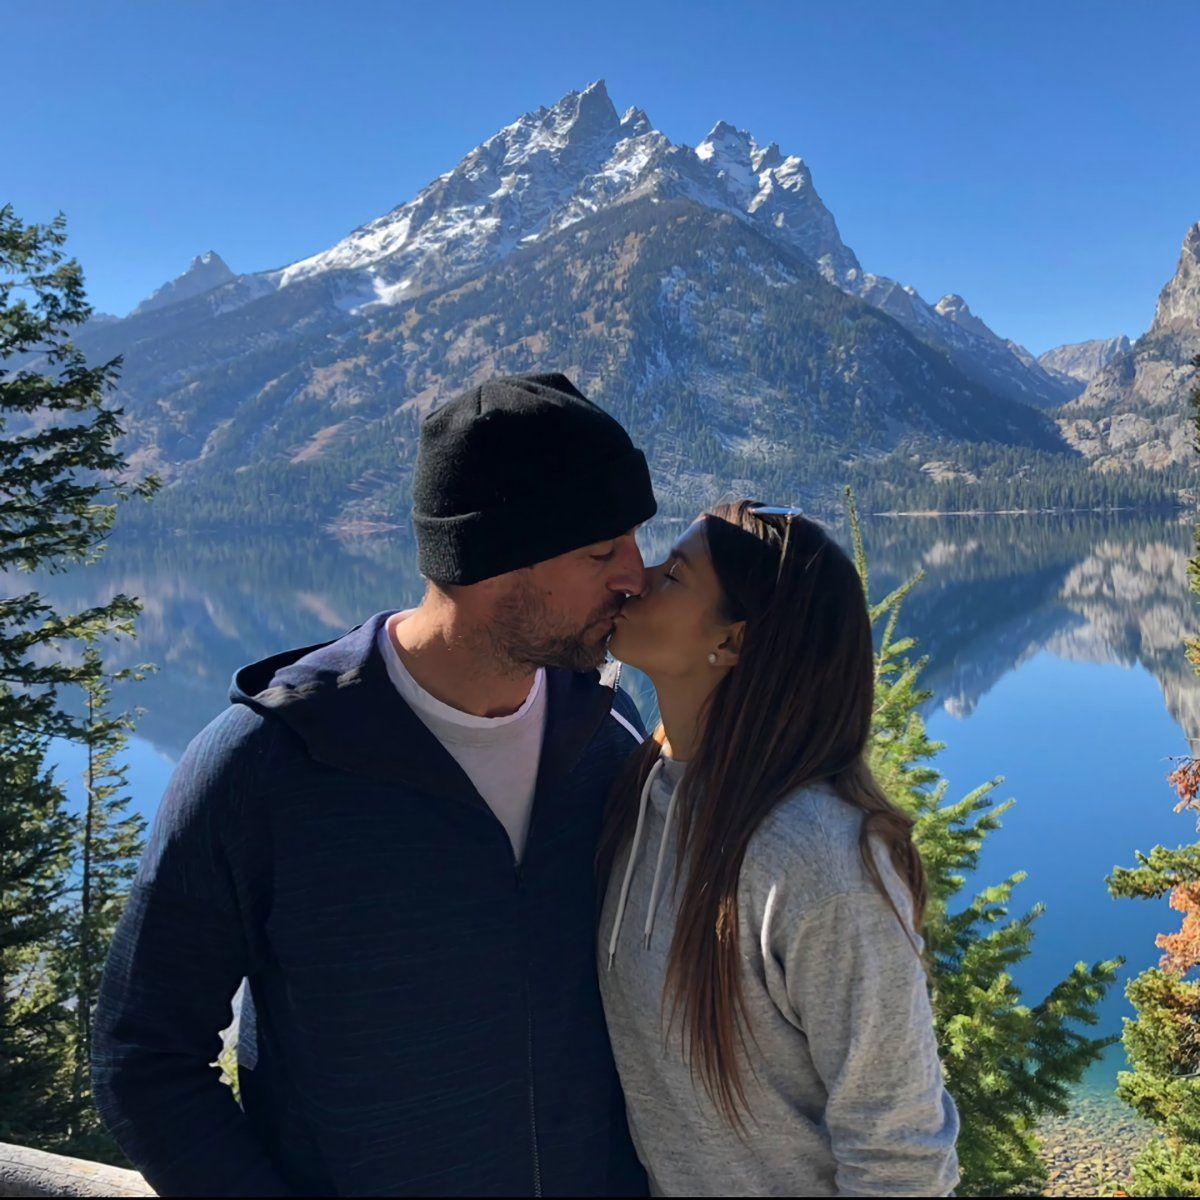 Danica Patrick And Aaron Rodgers Went On Vacation And Their Snaps Of New Zealand Are Just Stunning Scr Aaron Rodgers Danica Patrick Cincinnati Reds Baseball